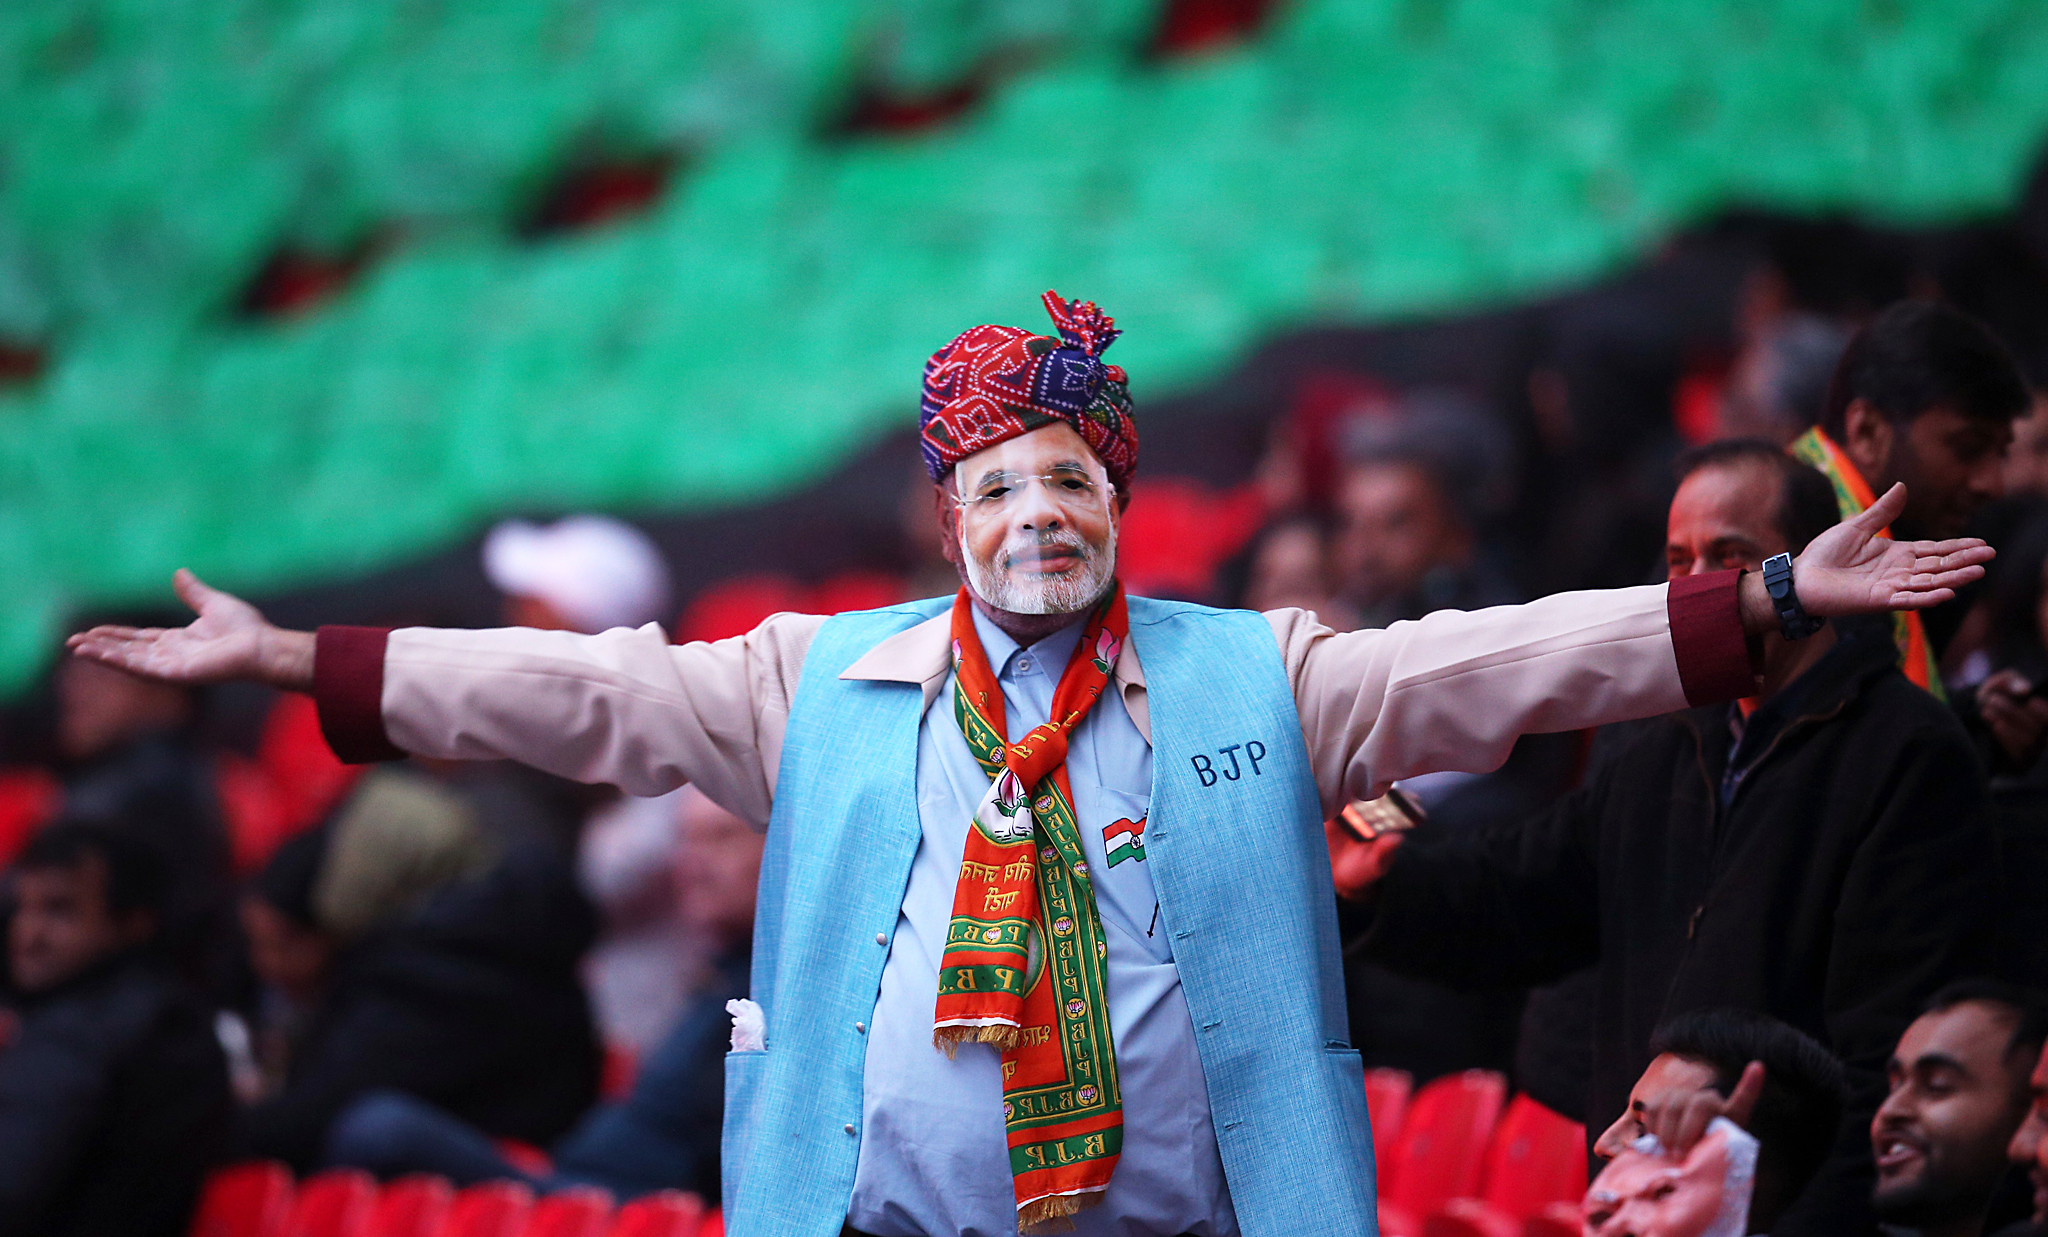 Wembley Welcomes Prime Minister Modi...LONDON, ENGLAND - NOVEMBER 13:  A man wearing a mask depicting Narendra Modi waves at Wembley Stadium prior to the Indian Prime Minister speaking, during the second day of an official three day visit on November 13, 2015 in London, England. Around 60,000 people including British Indians from 450 different community groups from around the country are expected to fill the stadium. A concert by an arts programme featuring 800 performers, including the Indian singing star Kanika Kapoor and the London Philharmonic Orchestra will entertain the crowd. Following Modi's address will be what is billed as one of the UKs largest ever firework displays.  (Photo by Dan Kitwood/Getty Images)